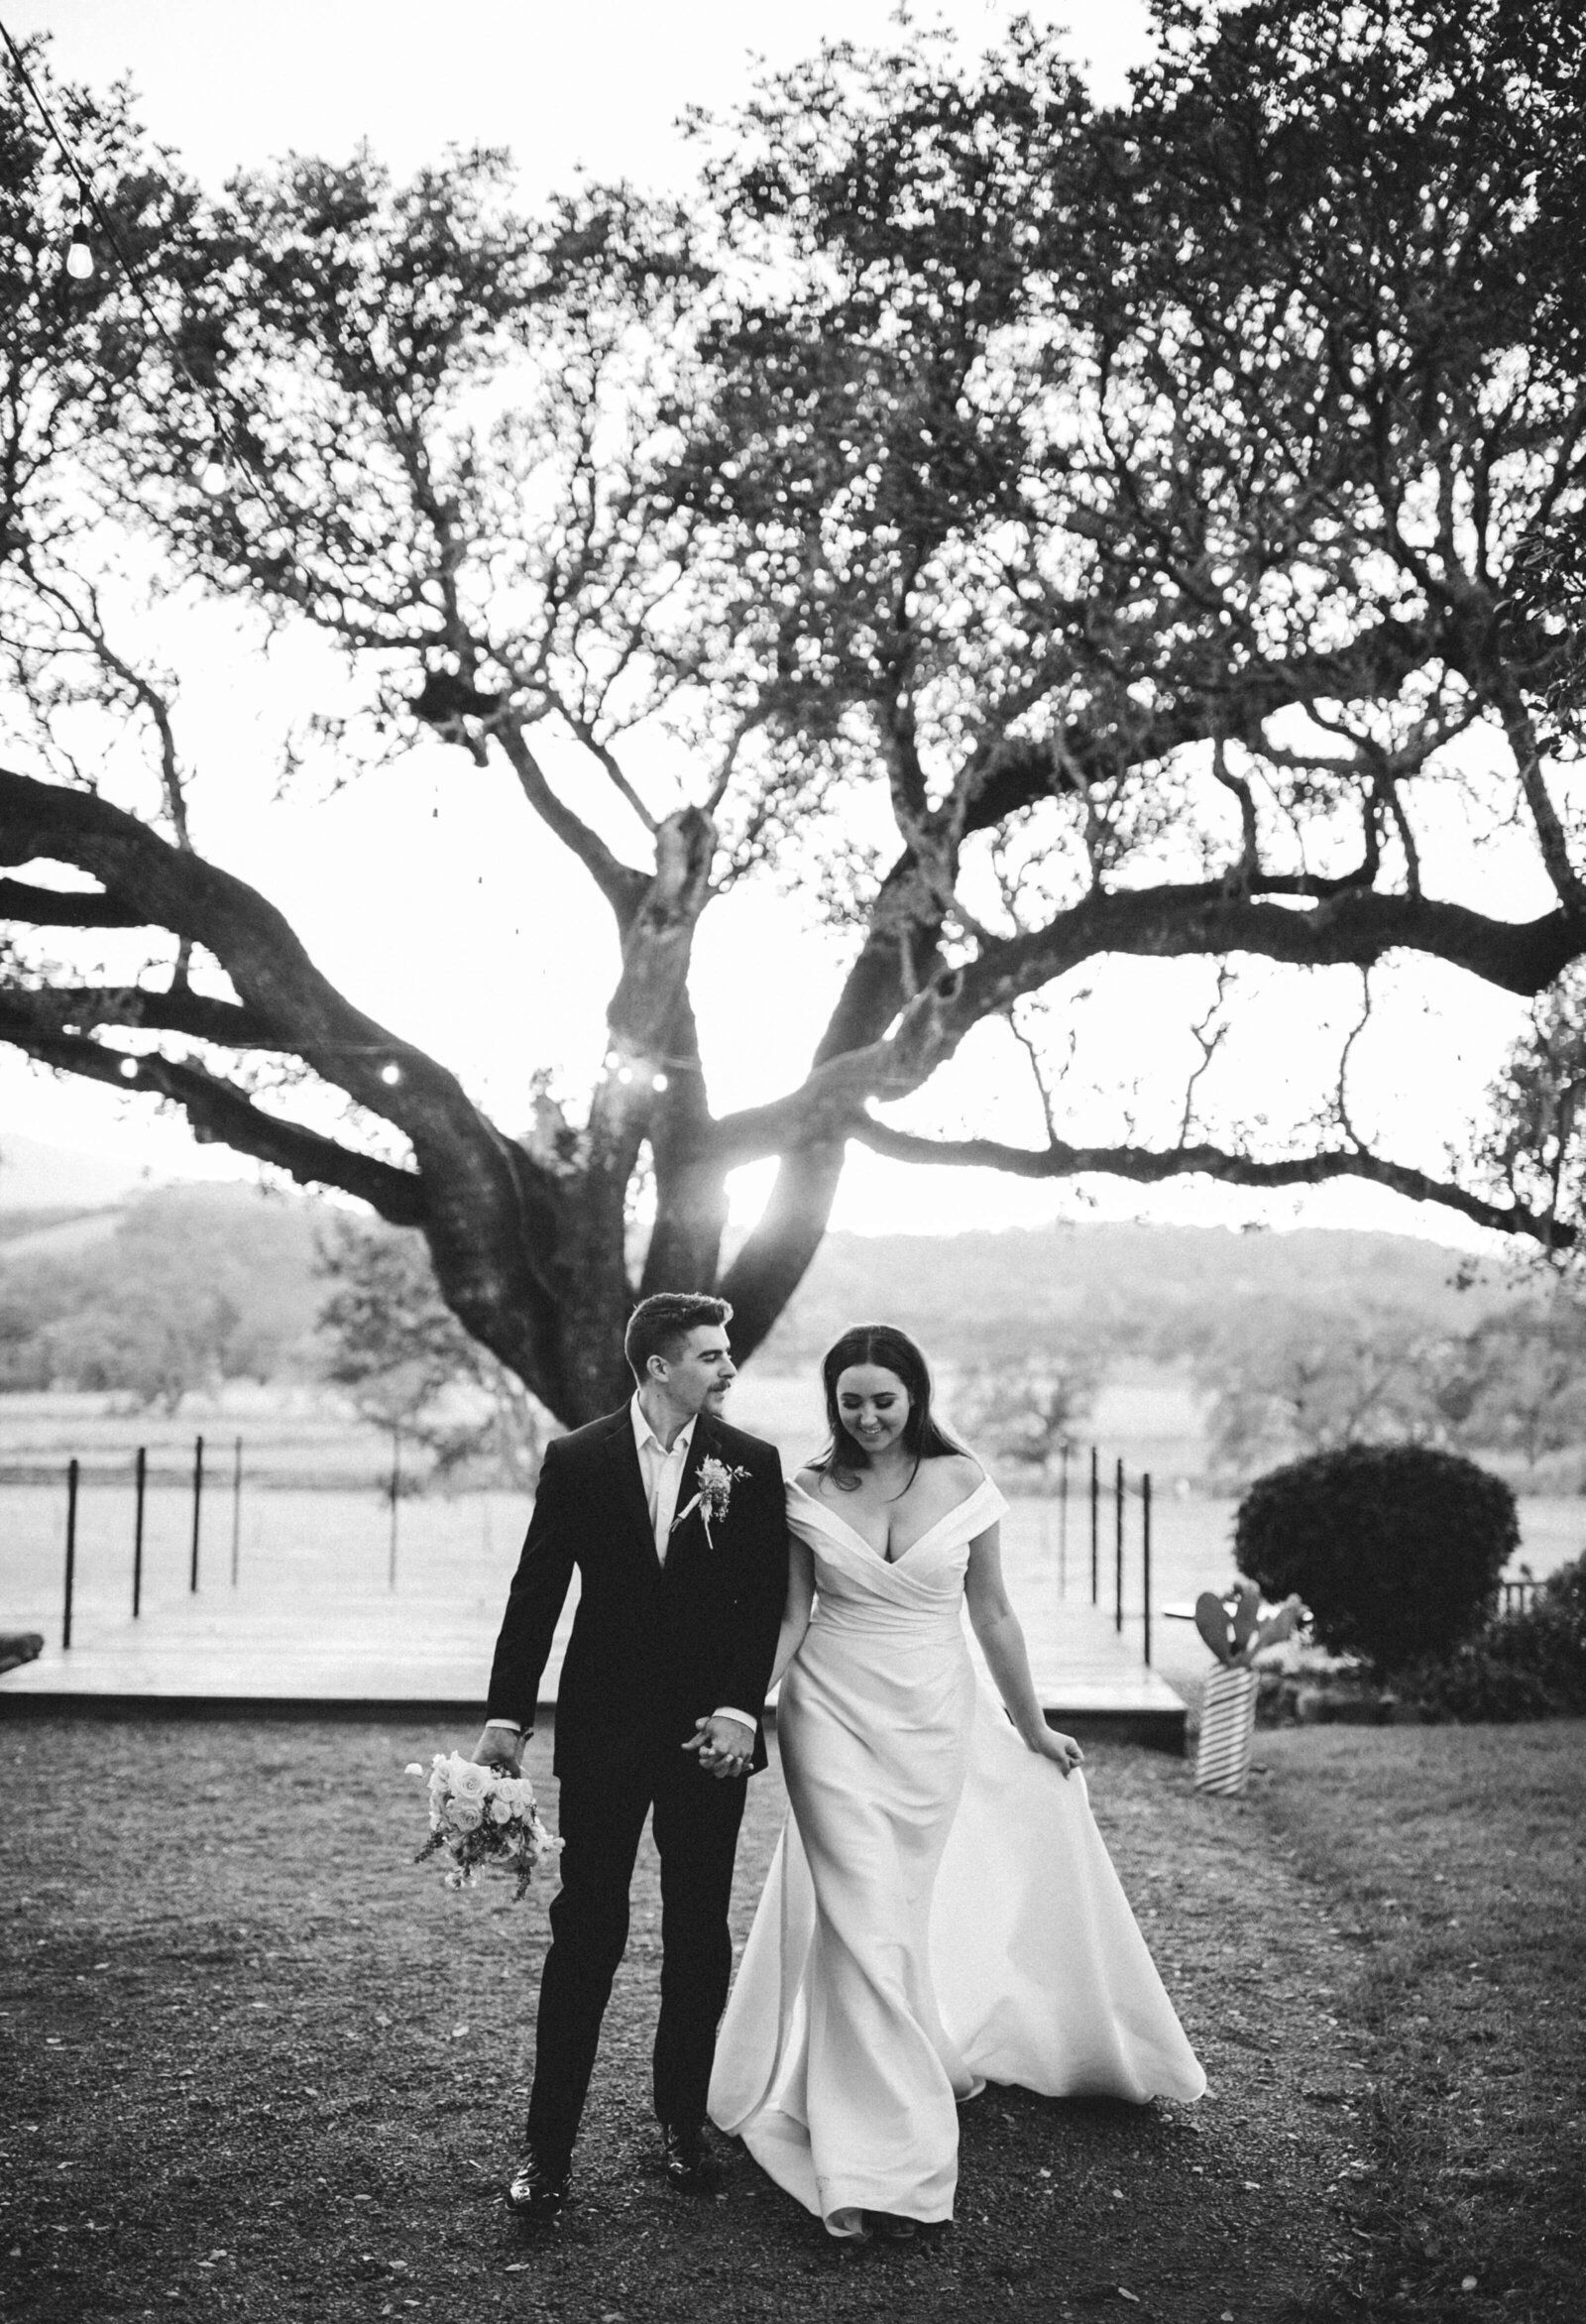 Sonoma-valley-beltane-ranch-california-wedding-events-by-gianna-somona-wedding-planner-8